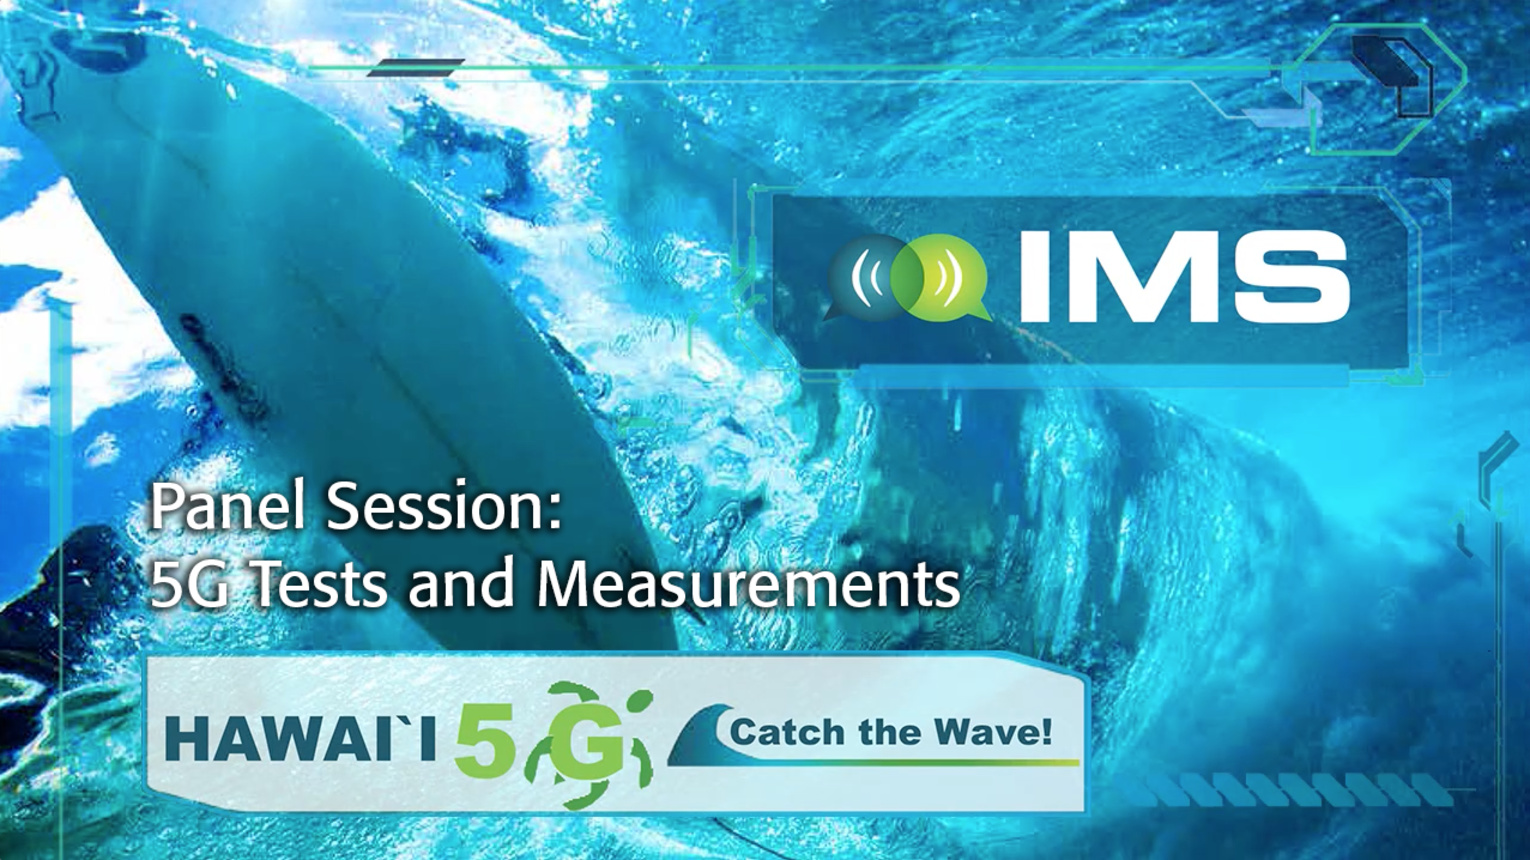 Panel Session: 5G Test and Measurements - 5G Summit at IMS 2017